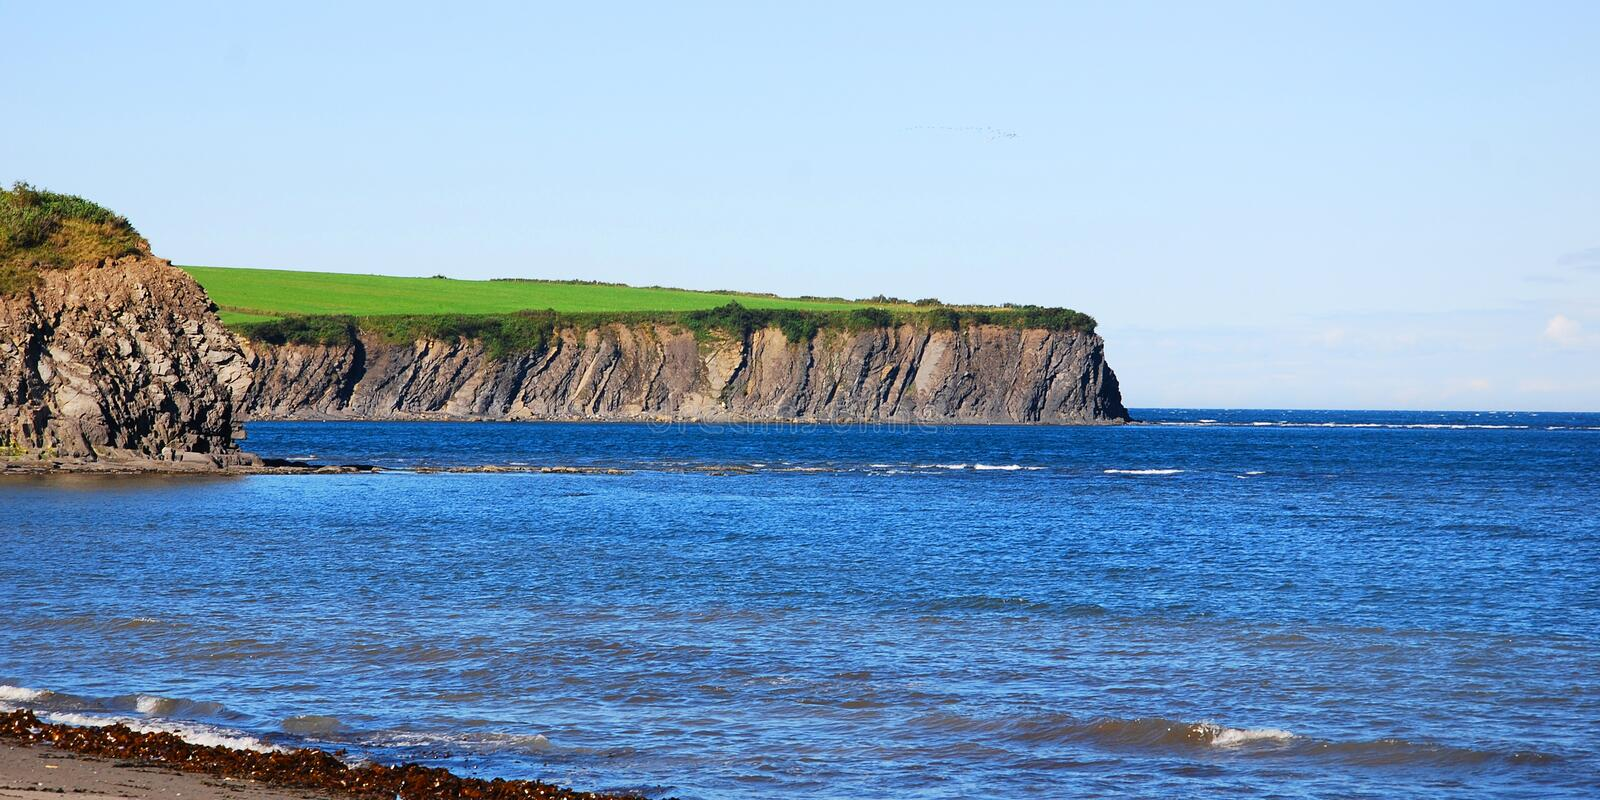 Cap Gaspe Quebec Canada. Cap Gaspe Quebeanada is a headland located at the eastern extremity of the Gaspé Peninsula in the Canadian province of Quebec.It is royalty free stock images